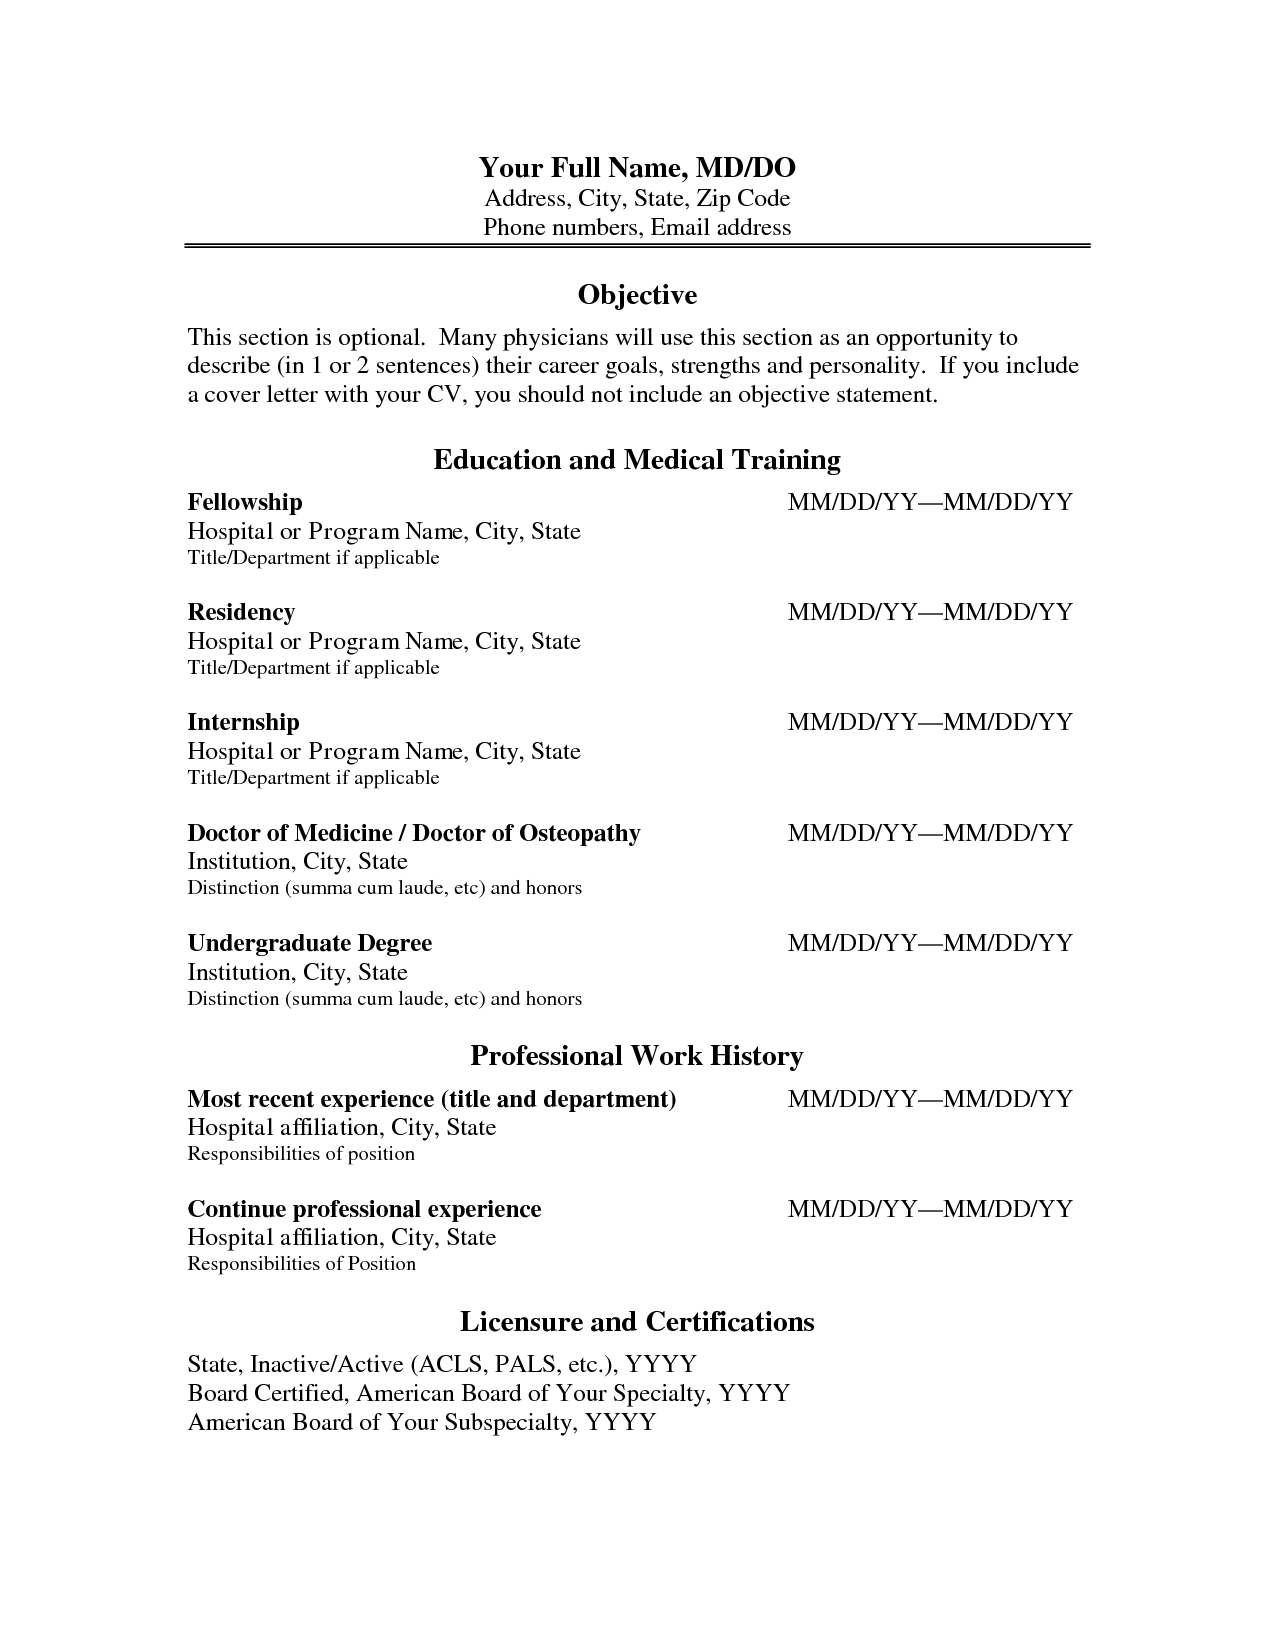 Resume Format Template Extraordinary Cv Format Physician Physician Assistant Resume And Curriculum